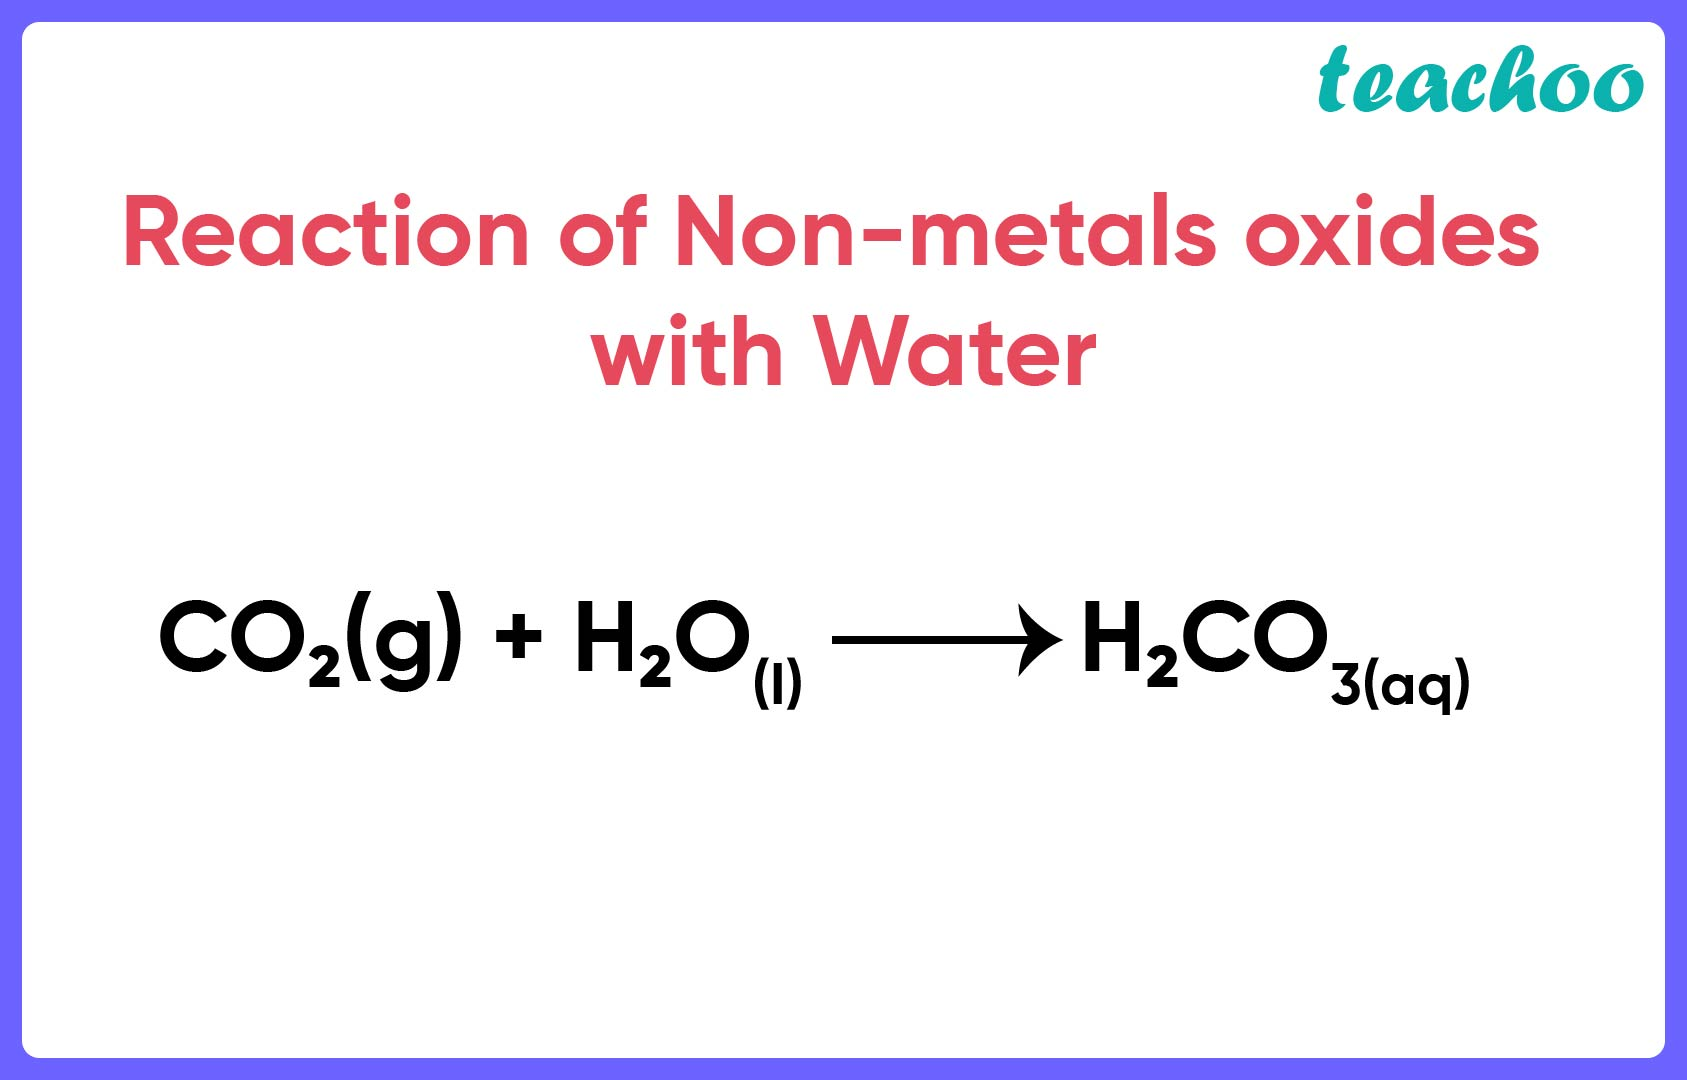 Reaction of Non-metals oxides with Water - Teachoo.jpg